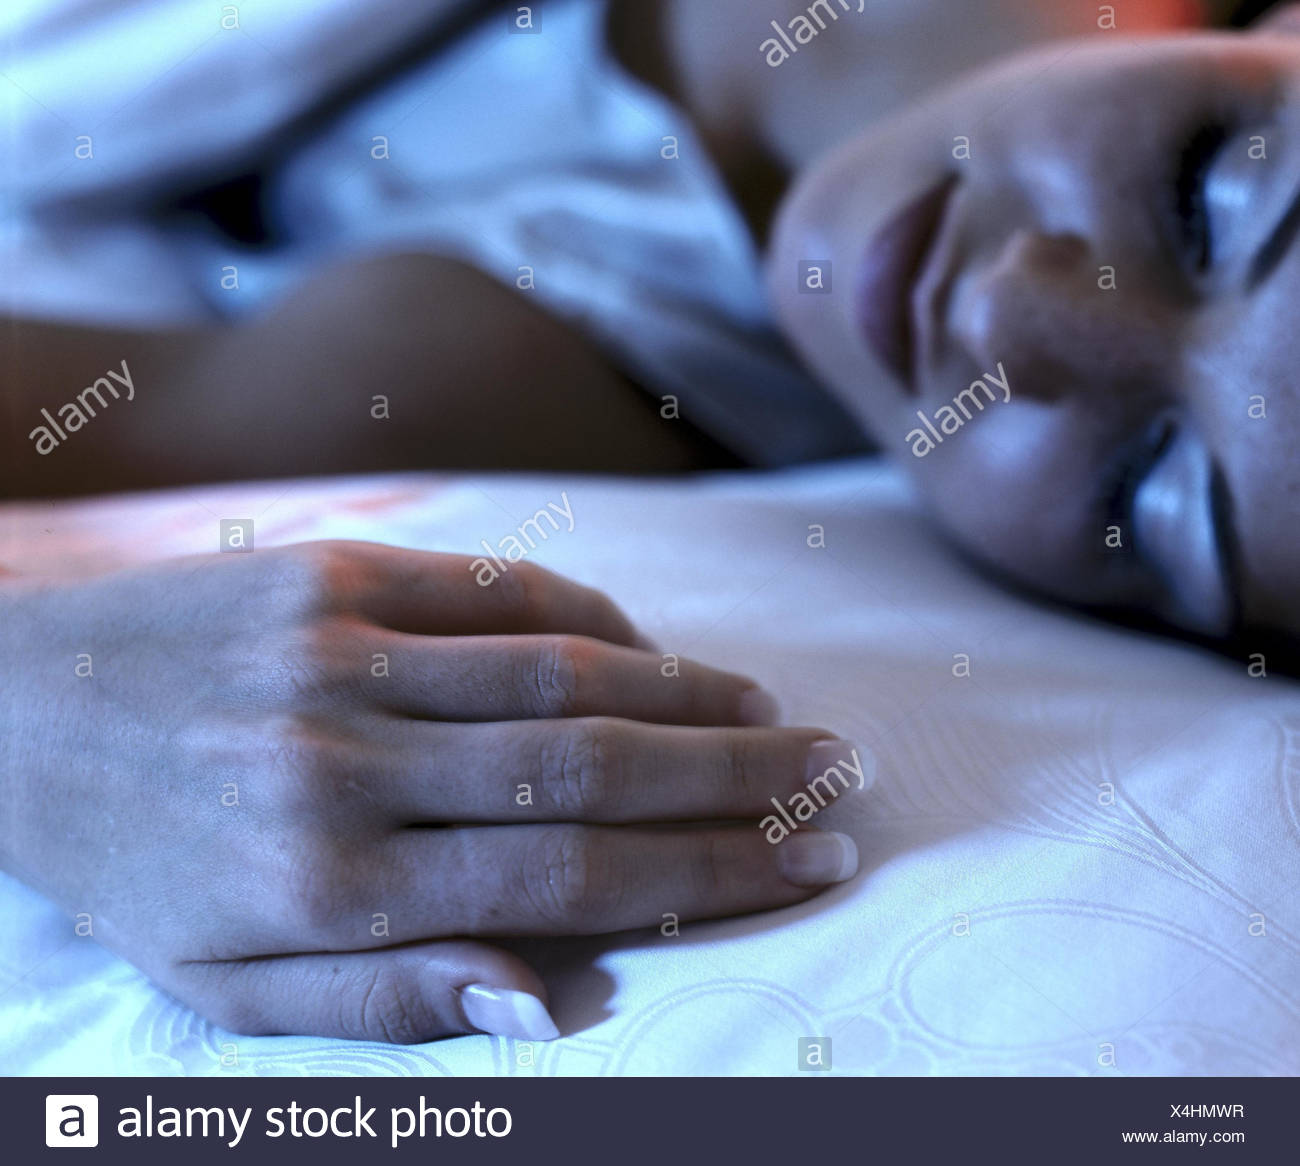 Bed, woman, sleep, relax detail bedroom, sleep, fatigue, tiredly, depletion, détente, recover, rest, rest, get a good night's sleep, beauty sleep, deep sleep, silence, night's rest - Stock Image